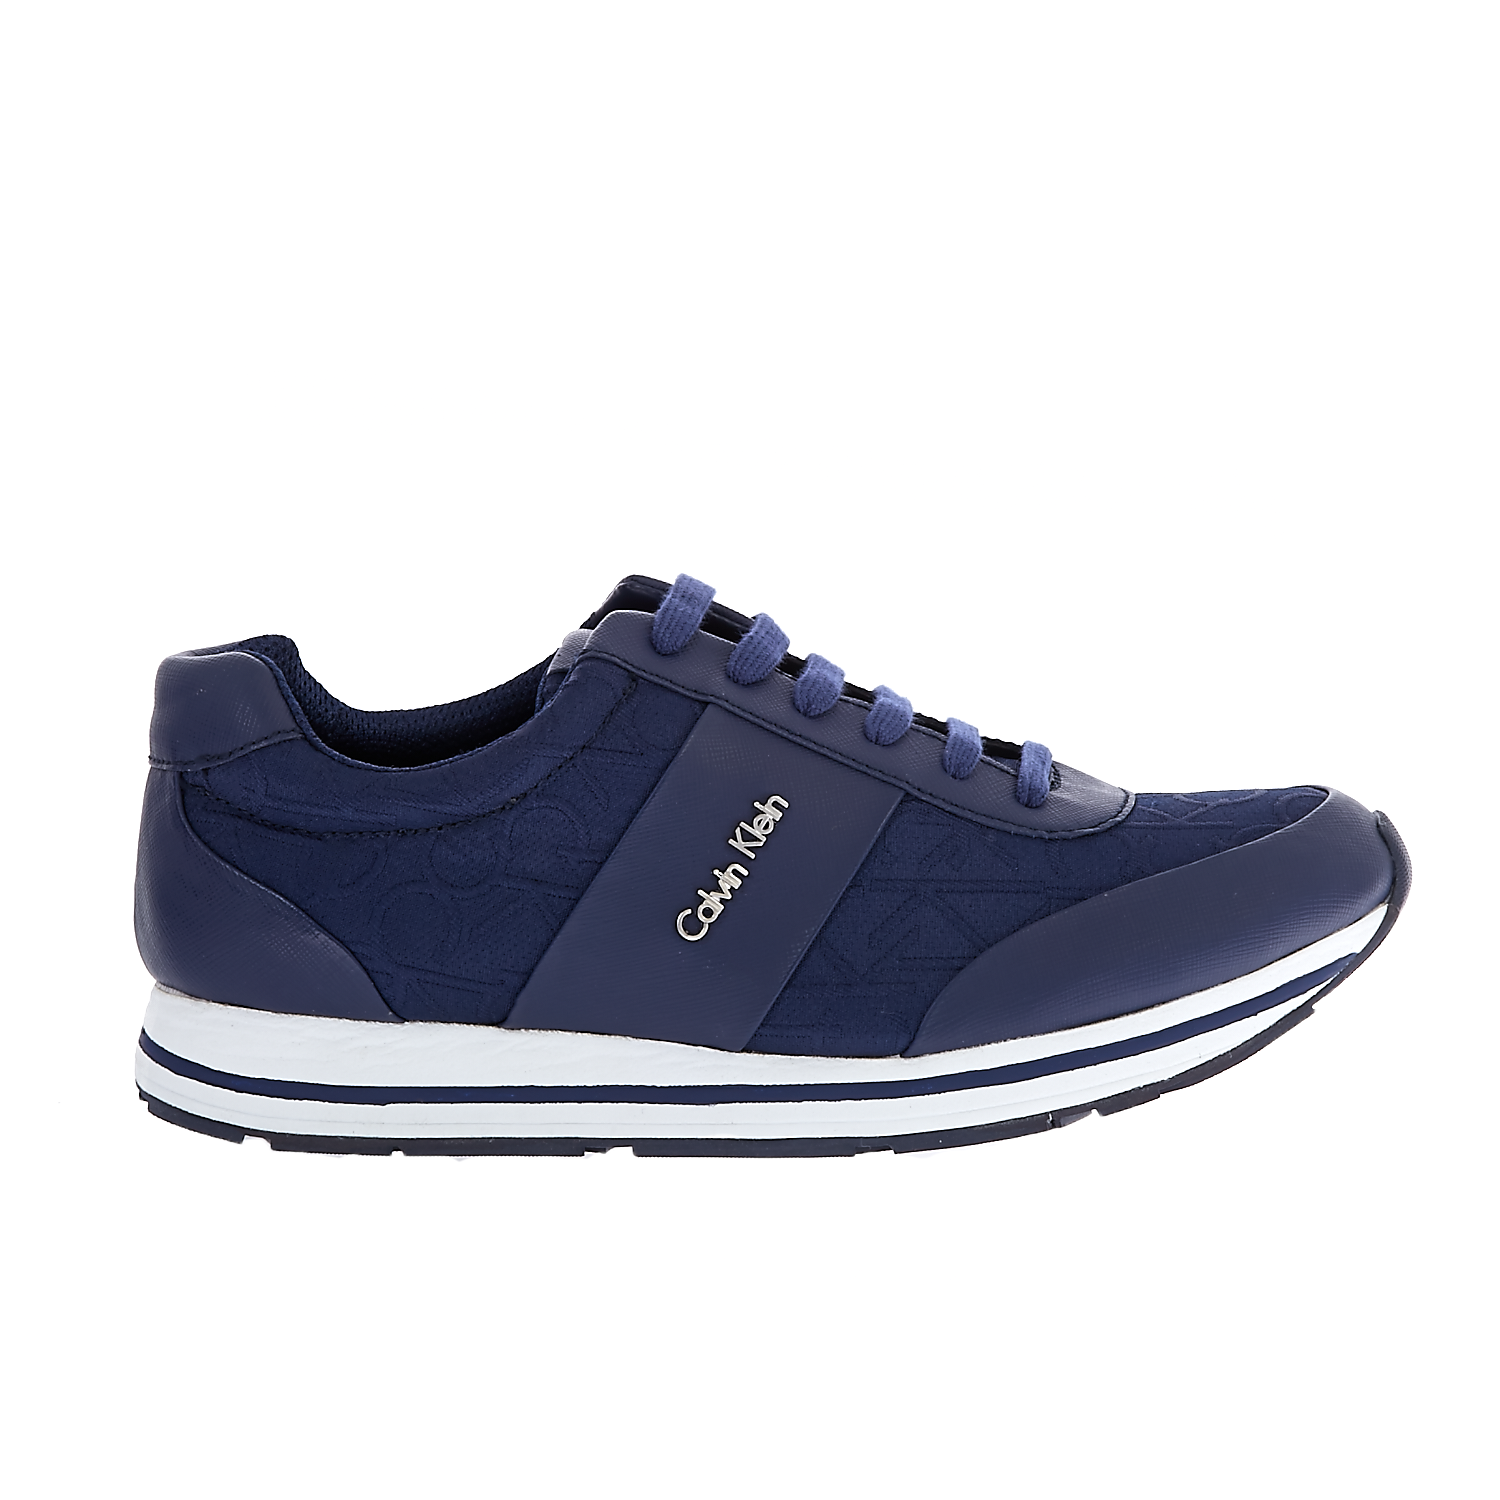 CALVIN KLEIN JEANS – Ανδρικά sneakers CALVIN KLEIN JEANS REED μπλε